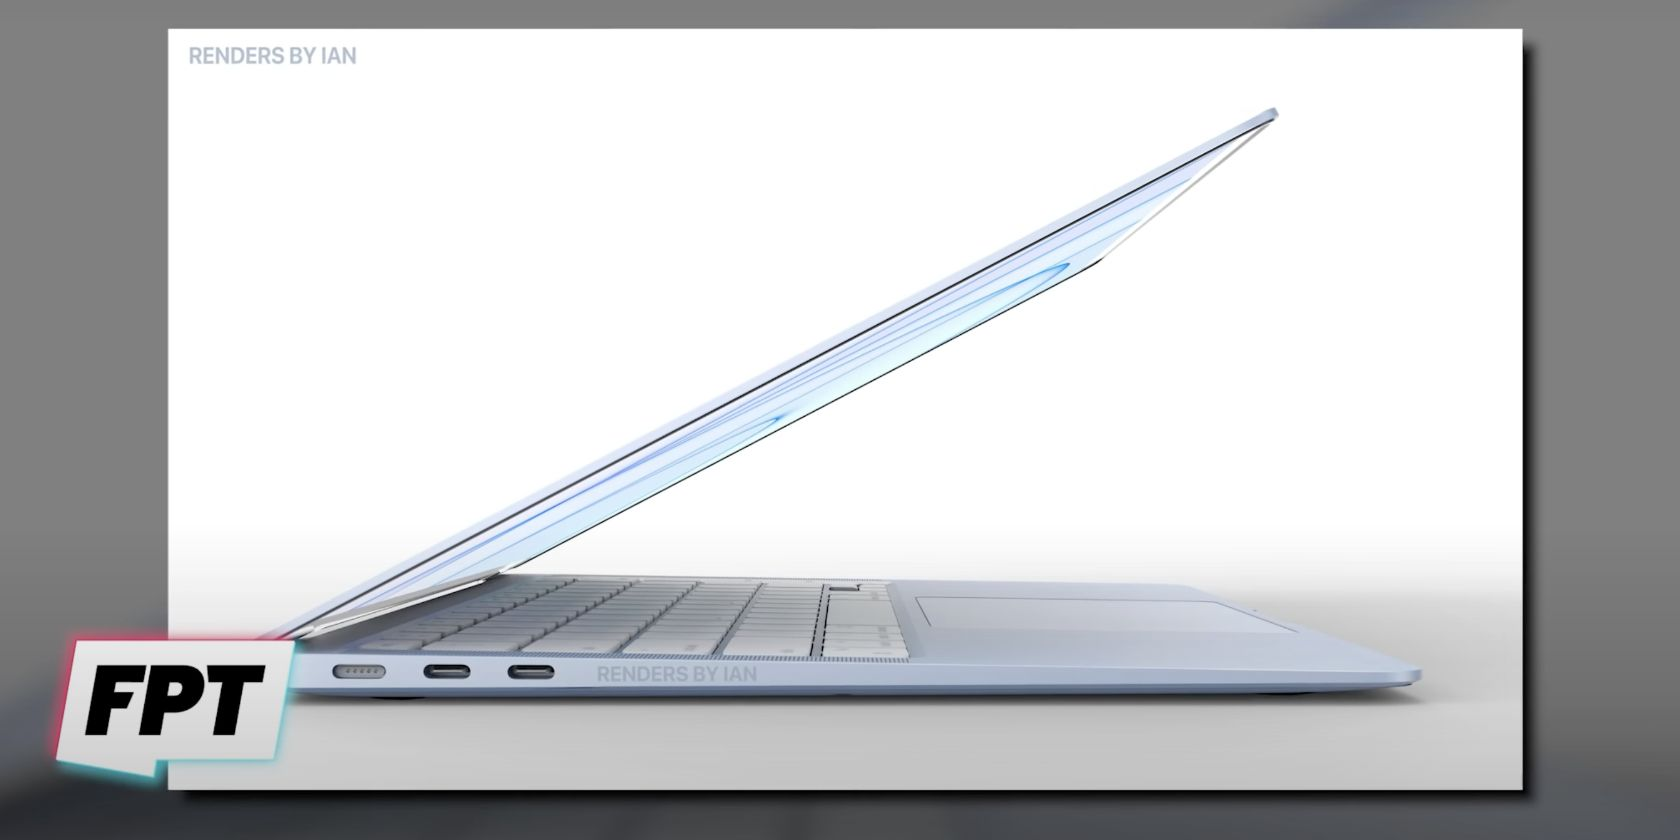 Rumor: New MacBooks Will Come in Bright Colors, Just Like the iMac